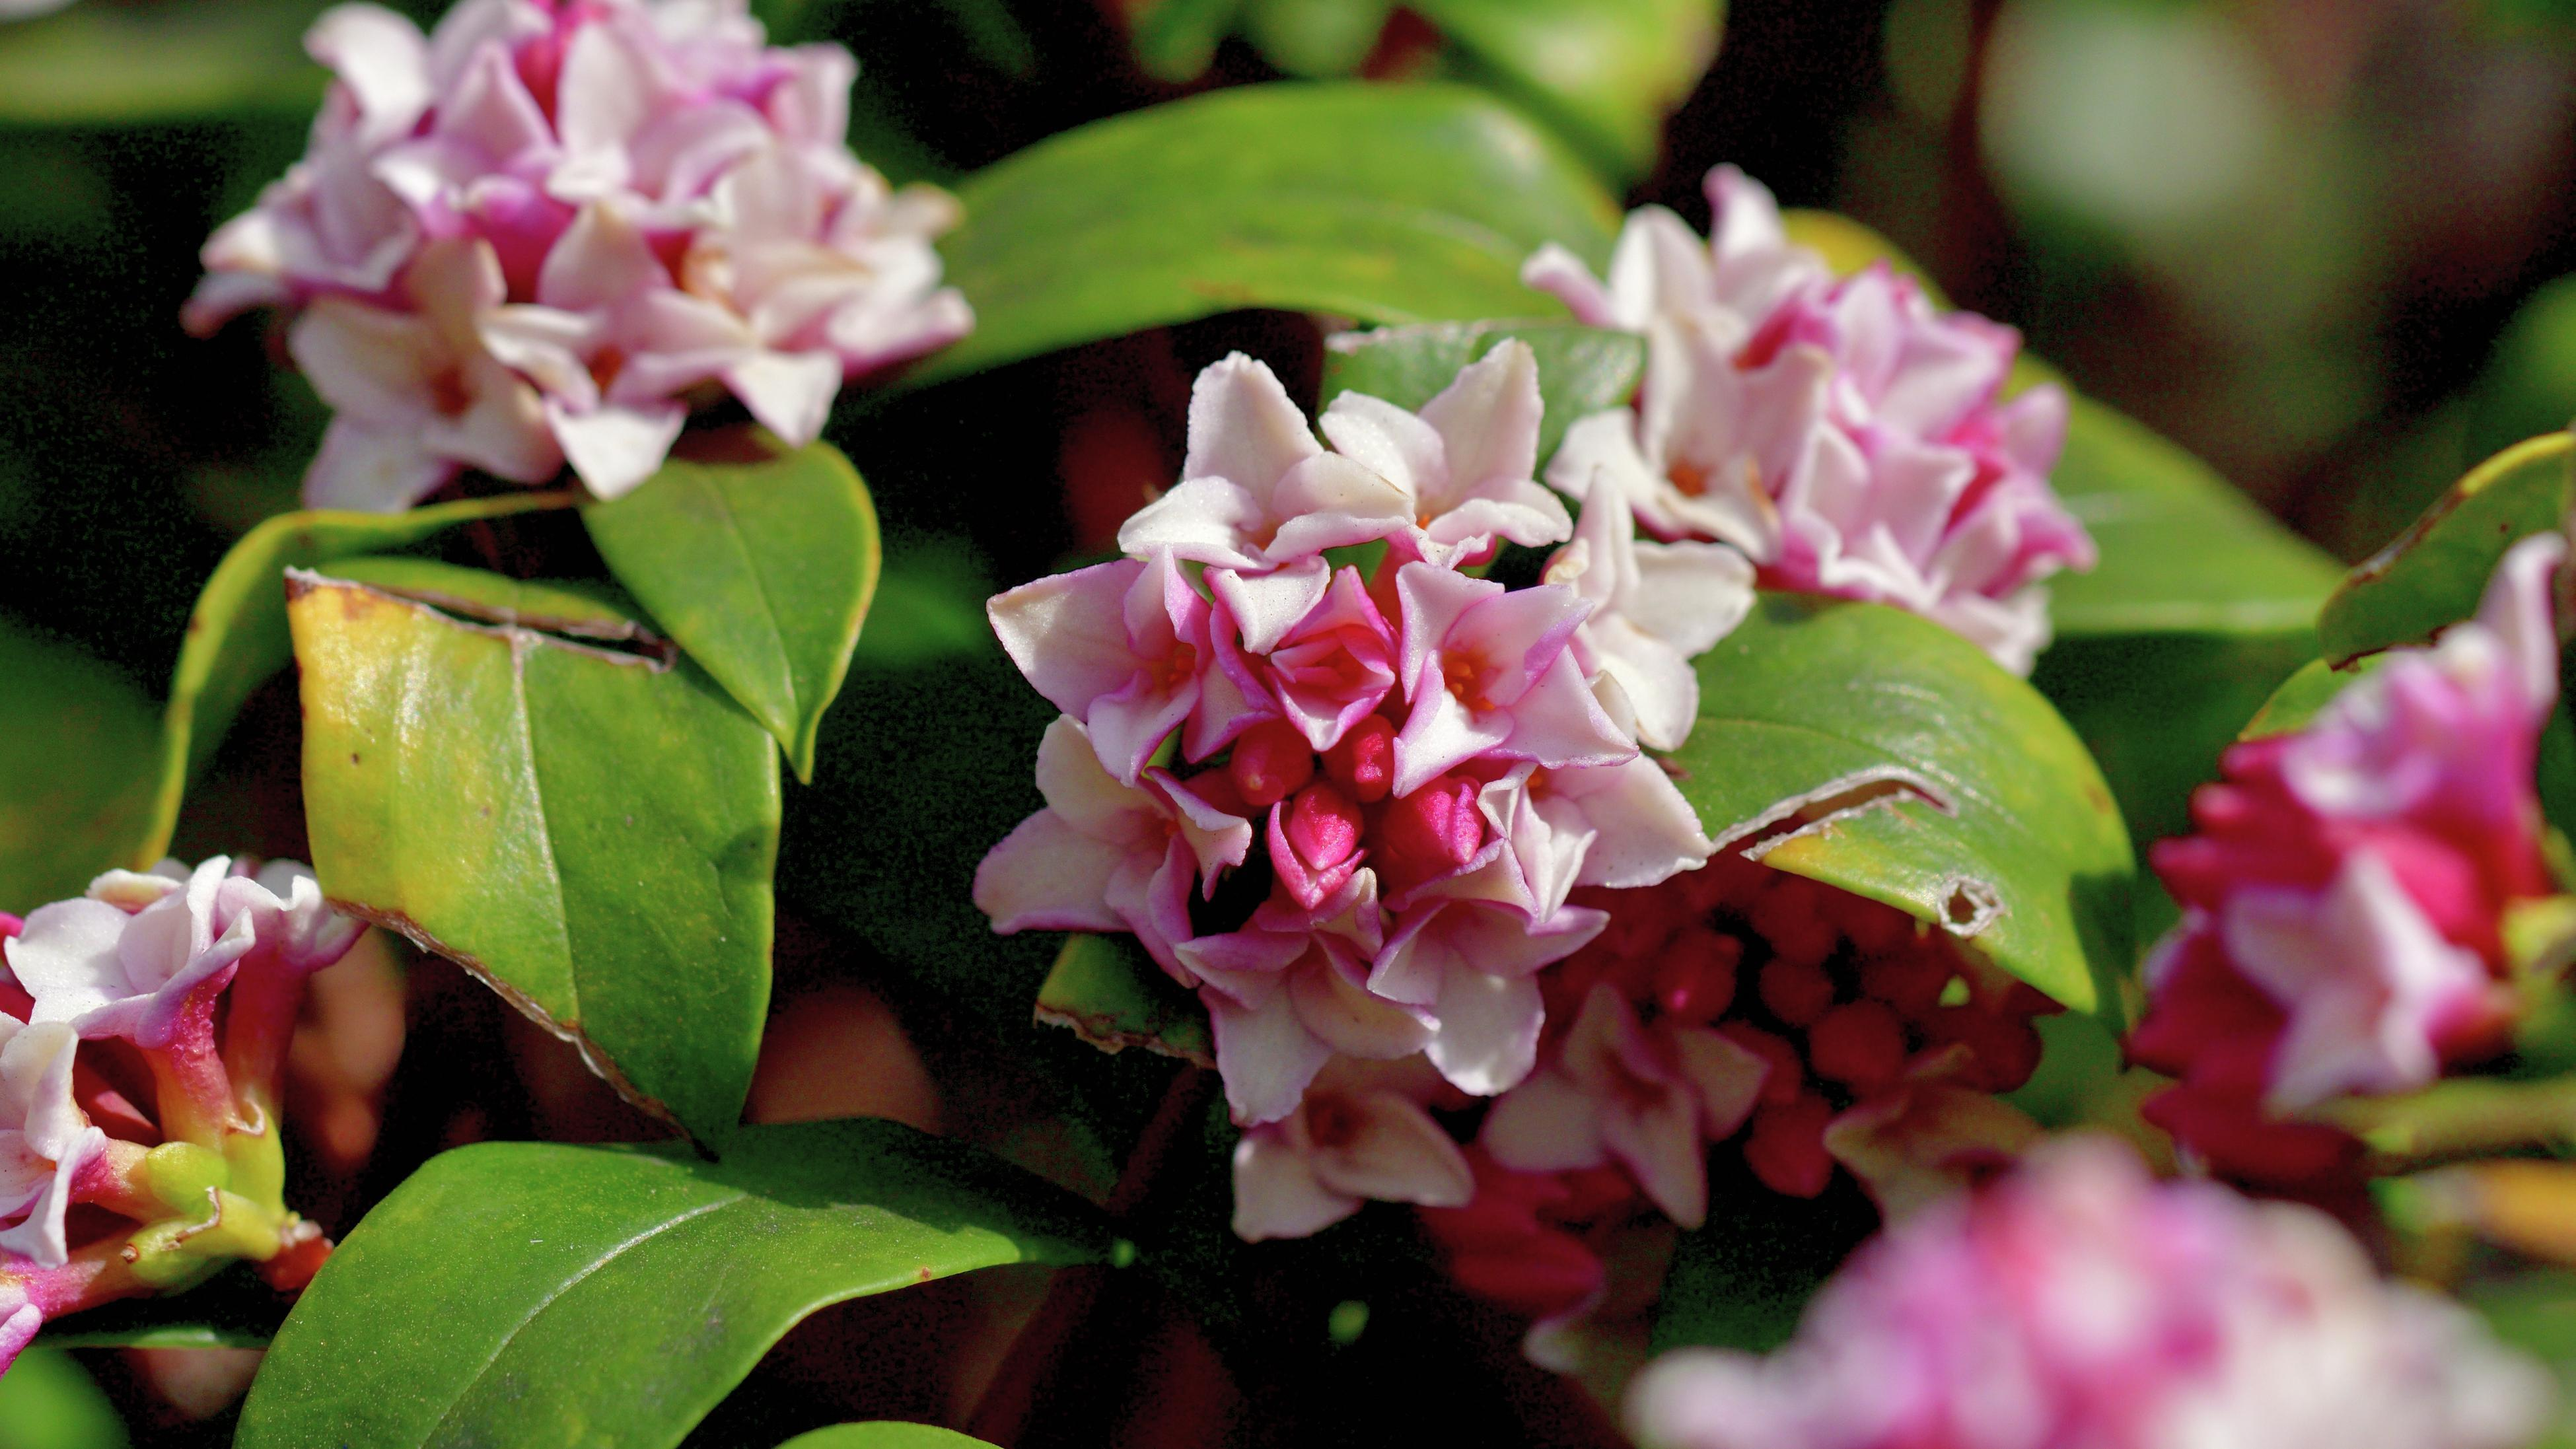 Close up of pink and white daphne flowers blooming